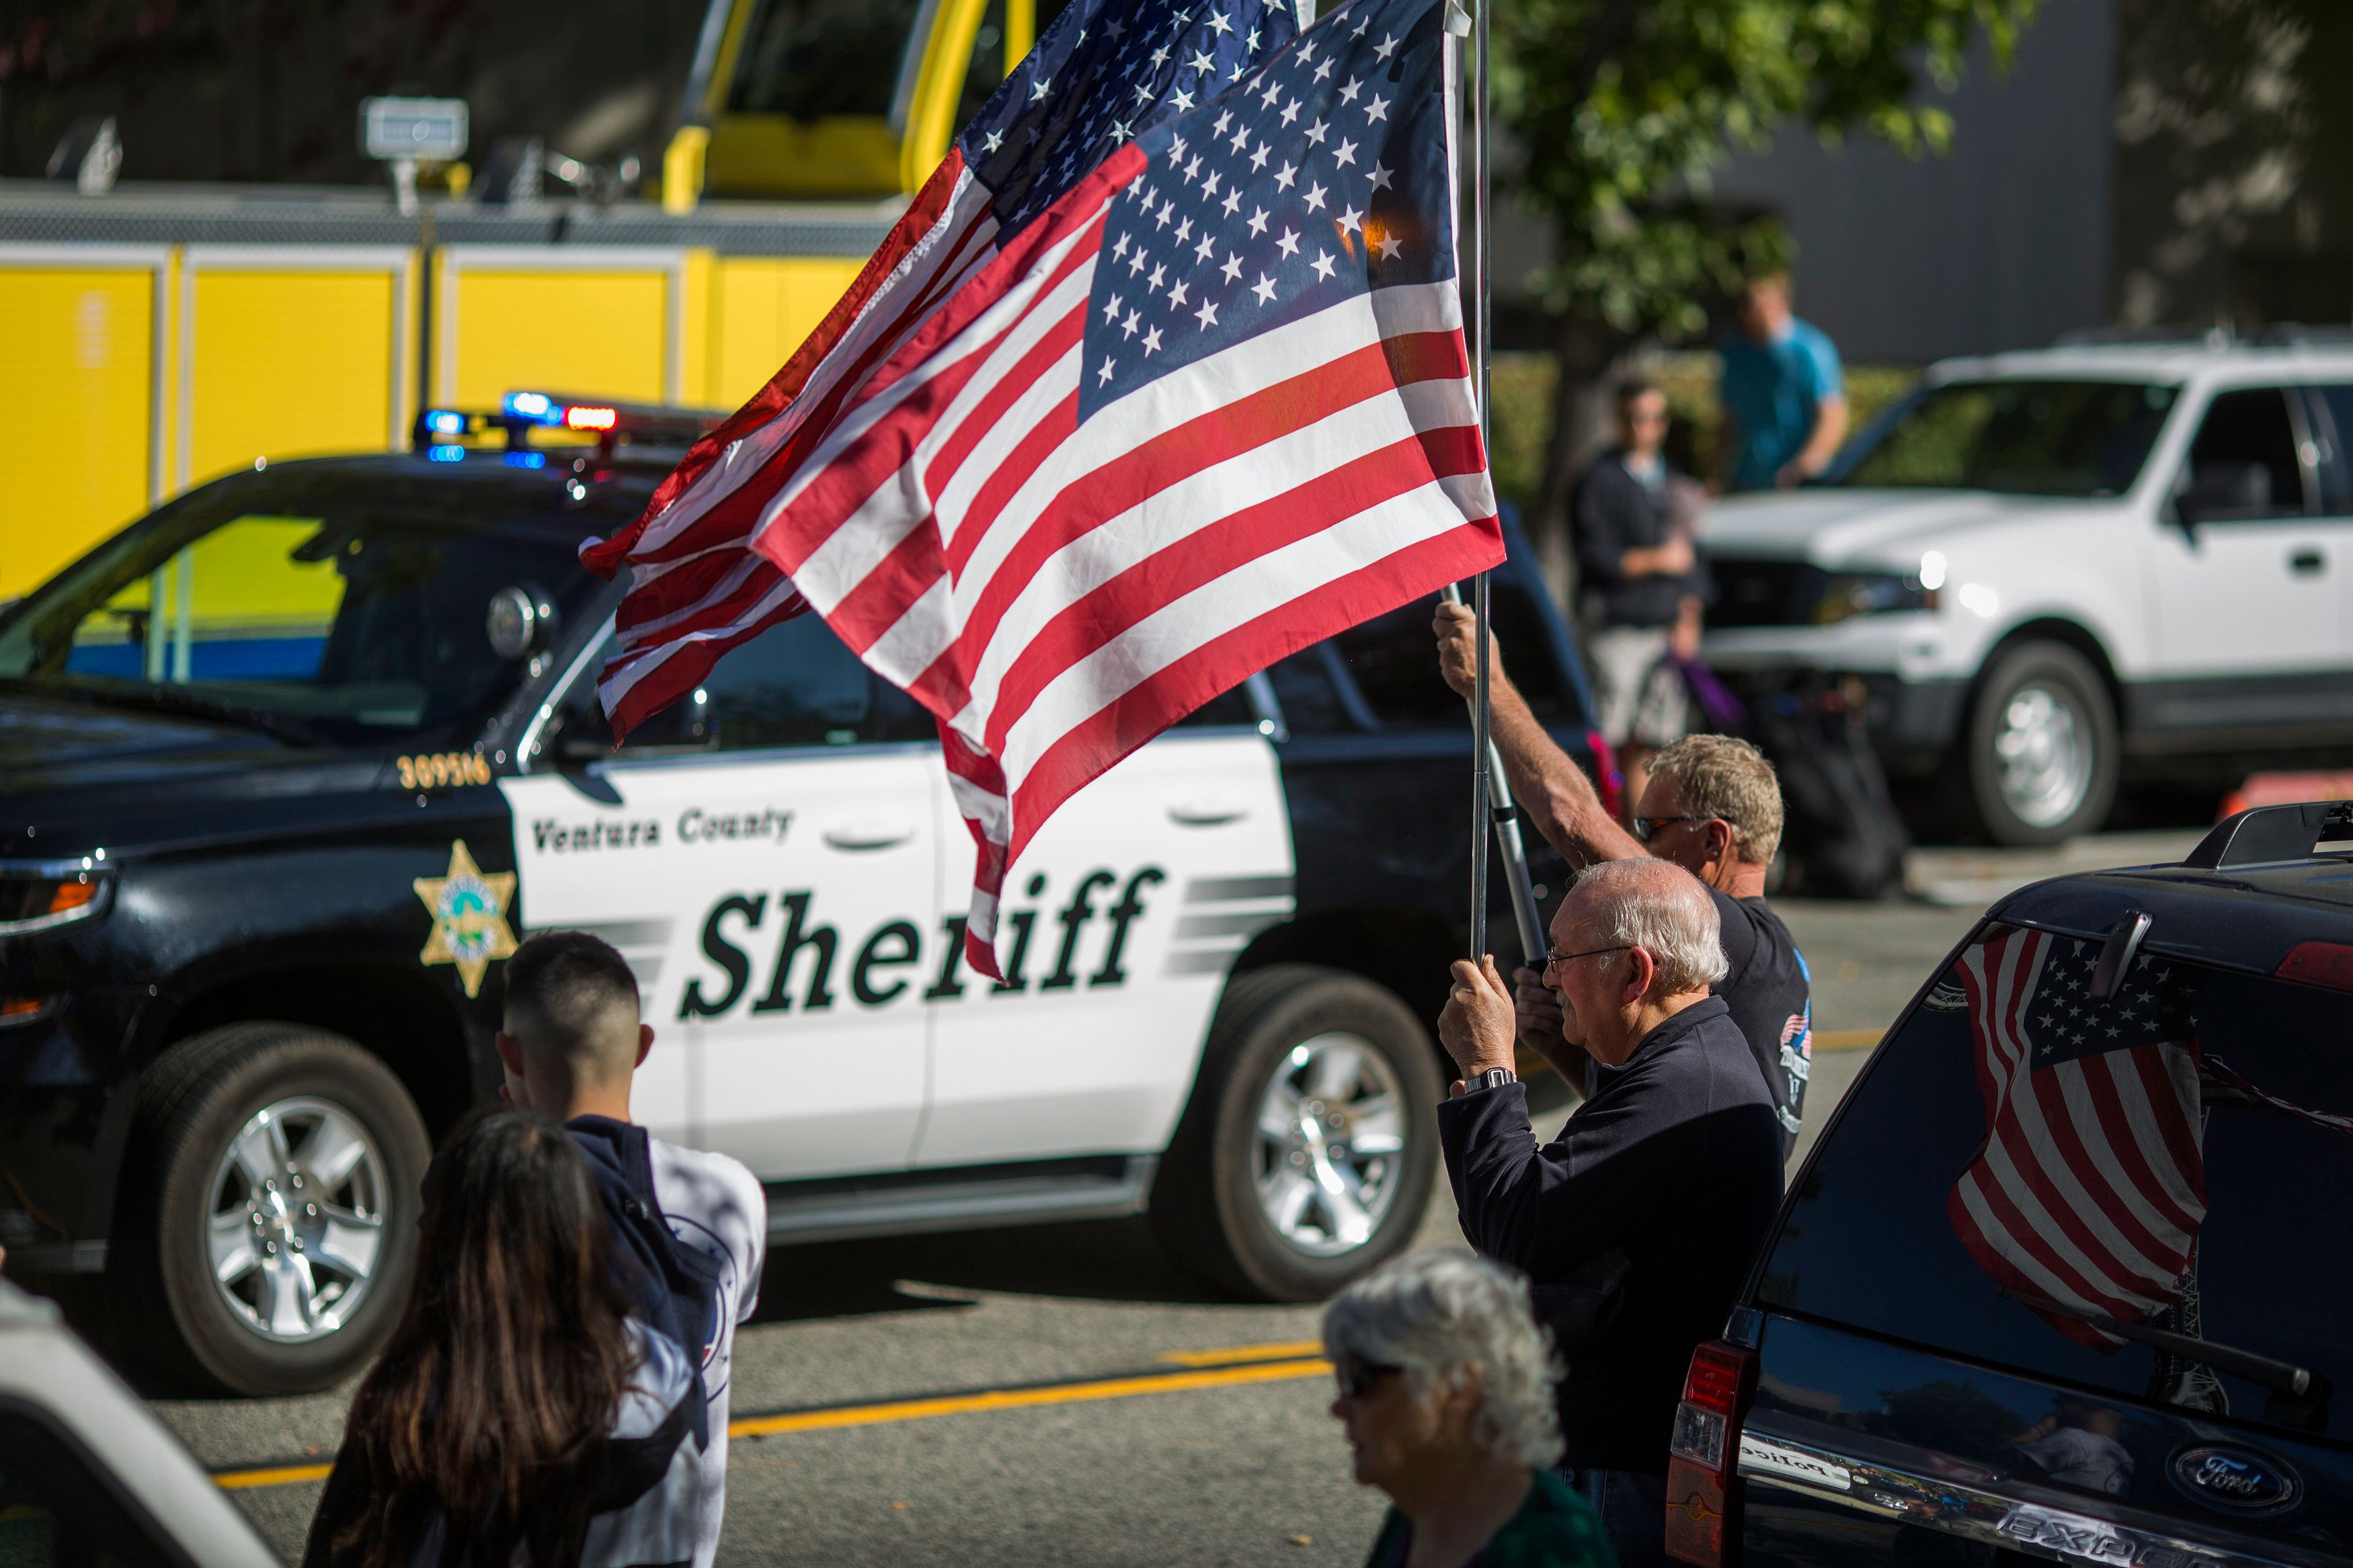 A man waves a flag inThousand Oaks, California, as a Ventura County Sheriff's patrol car passes. Deputies visited the s